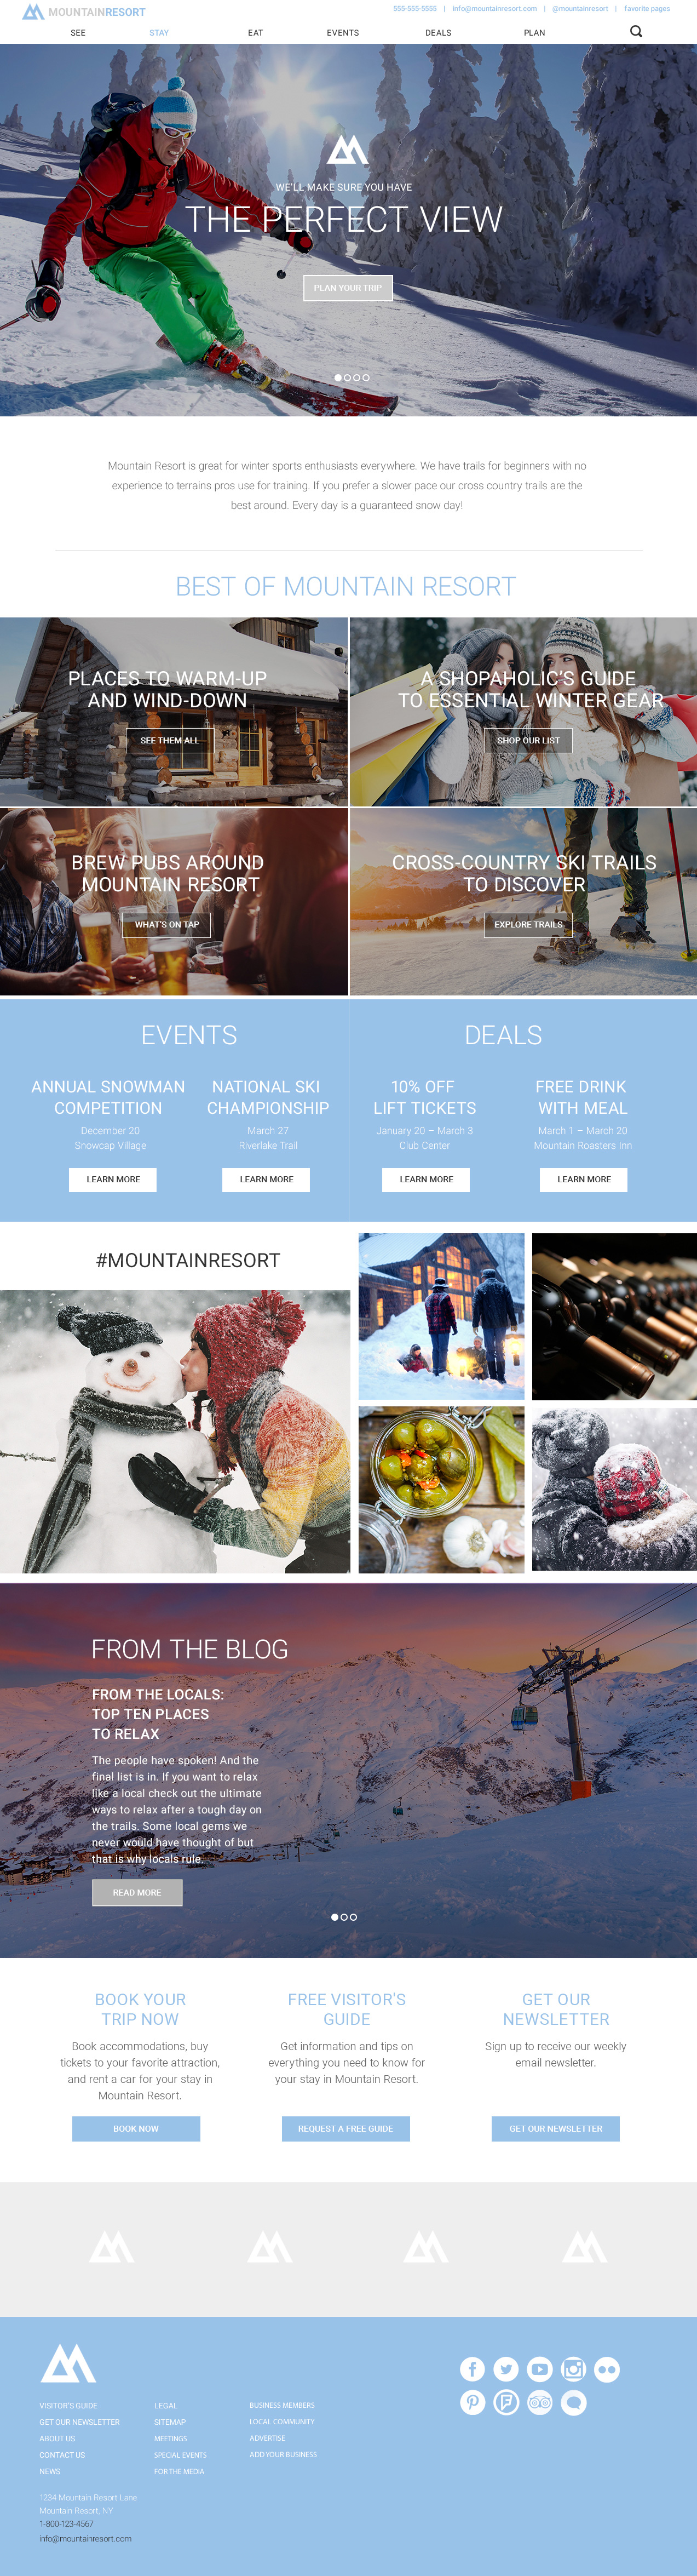 Mountain Resort Theme Homepage Desktop Preview